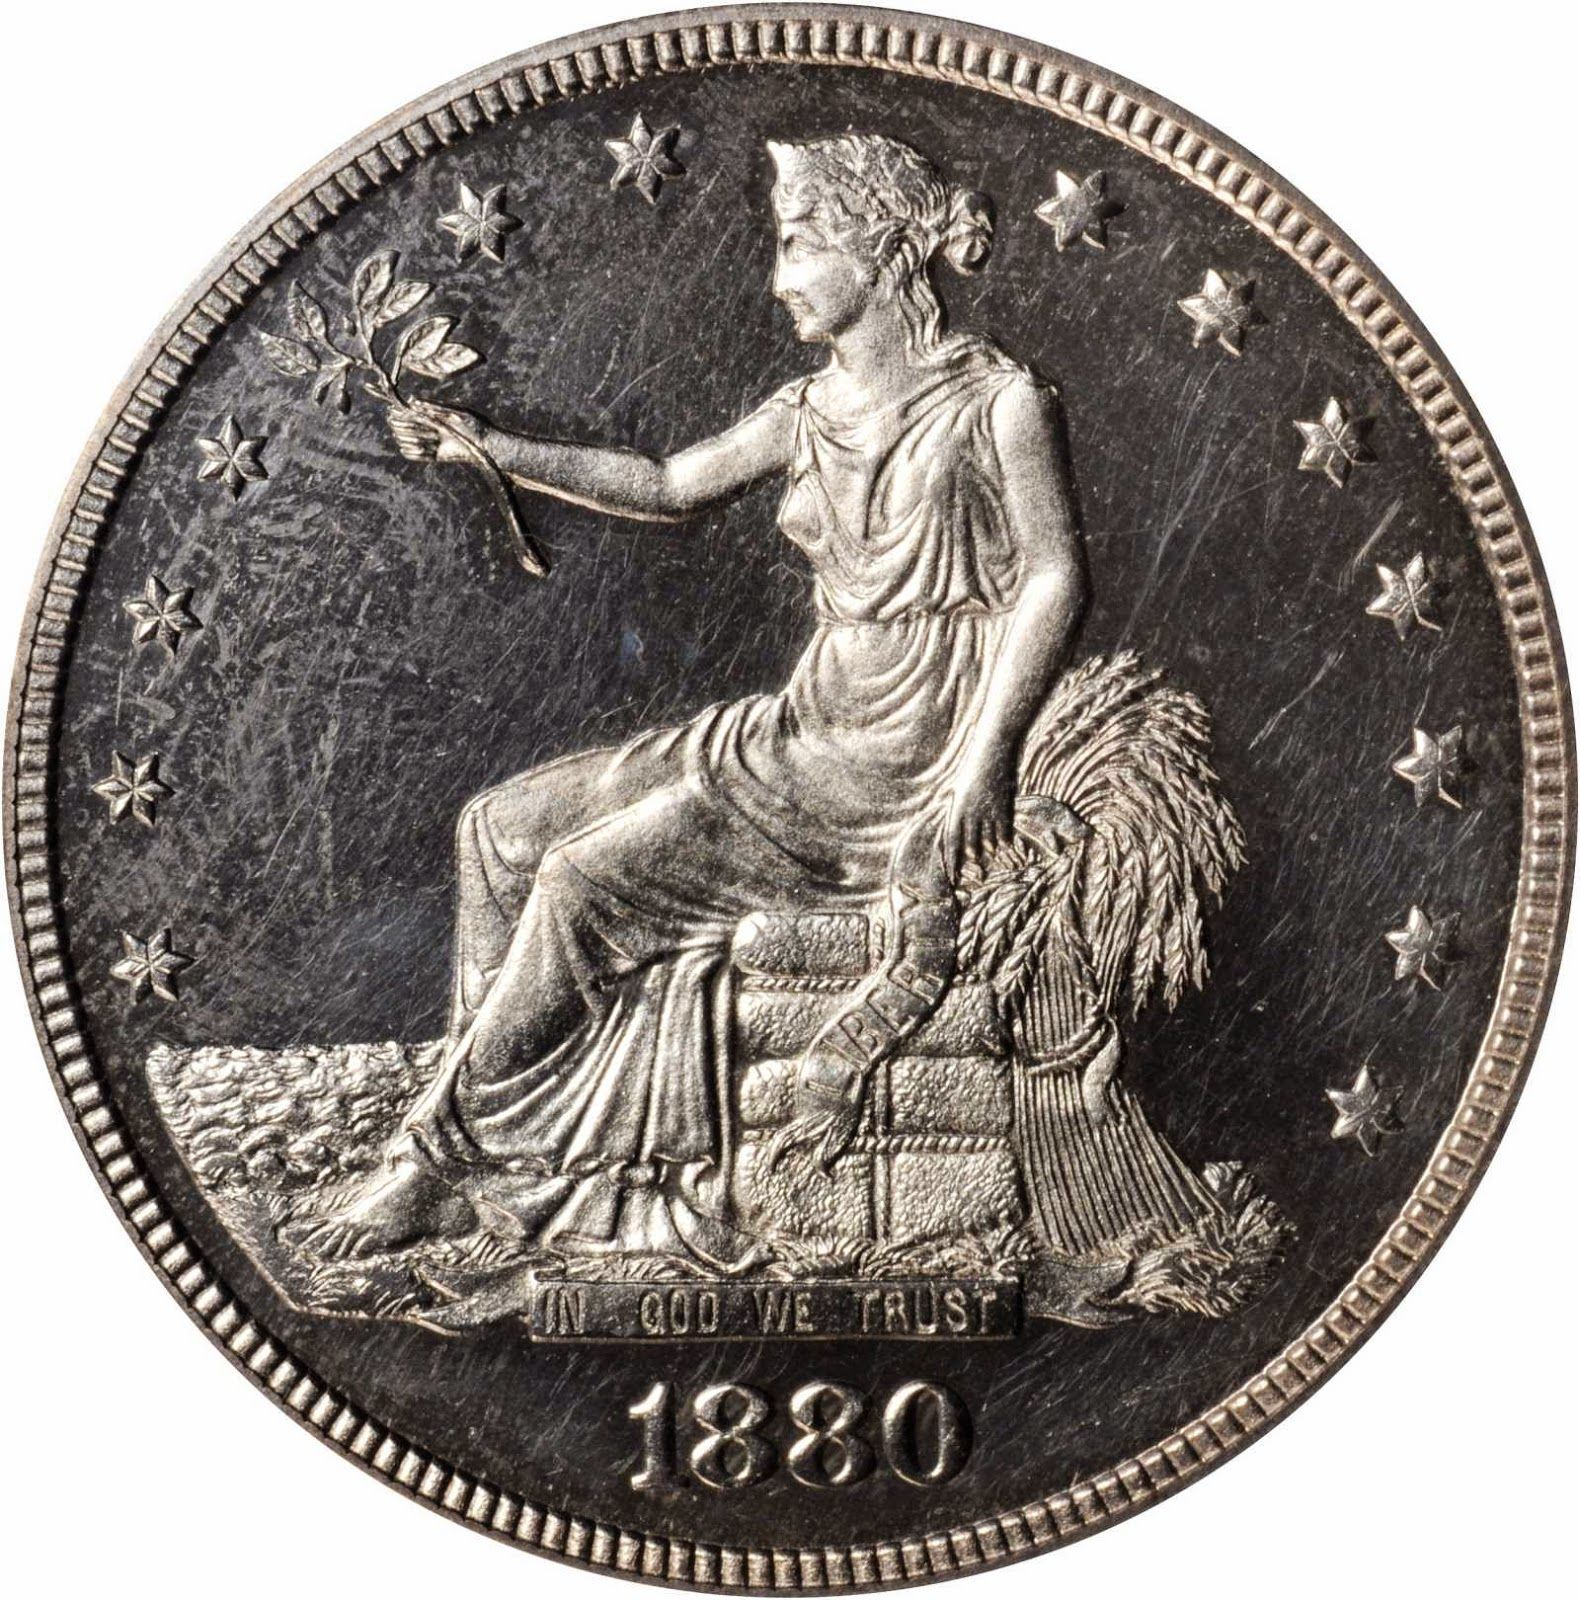 Us Coins 1880 Silver Trade Dollar American Silver Coins Valuable Coins Old Coins